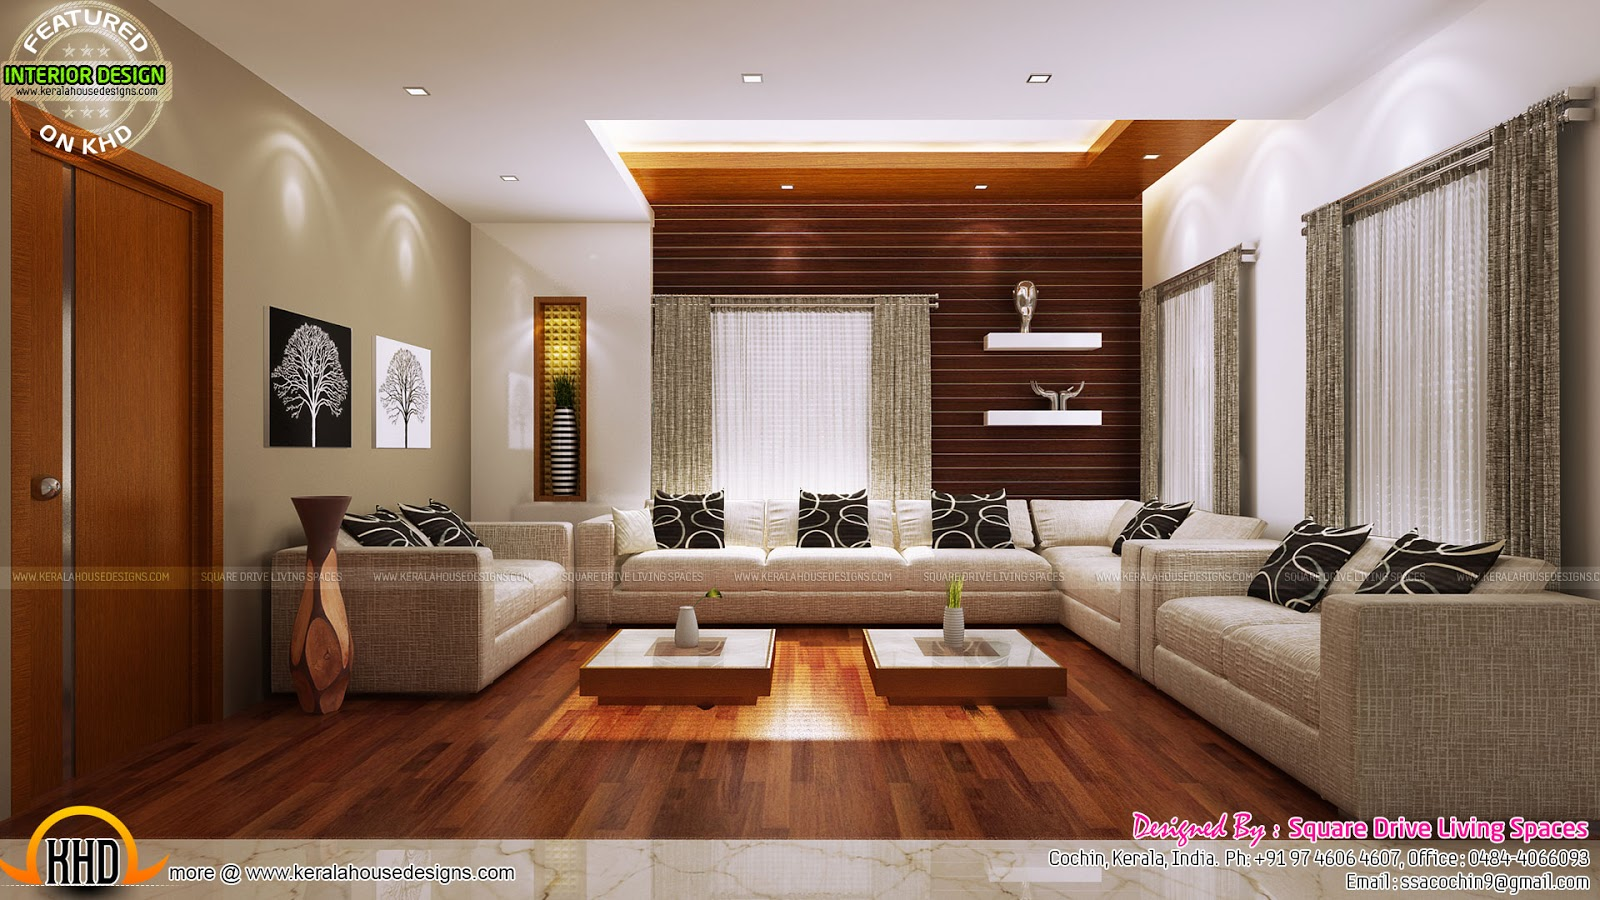 Excellent kerala interior design kerala home design and for Home interior ideas